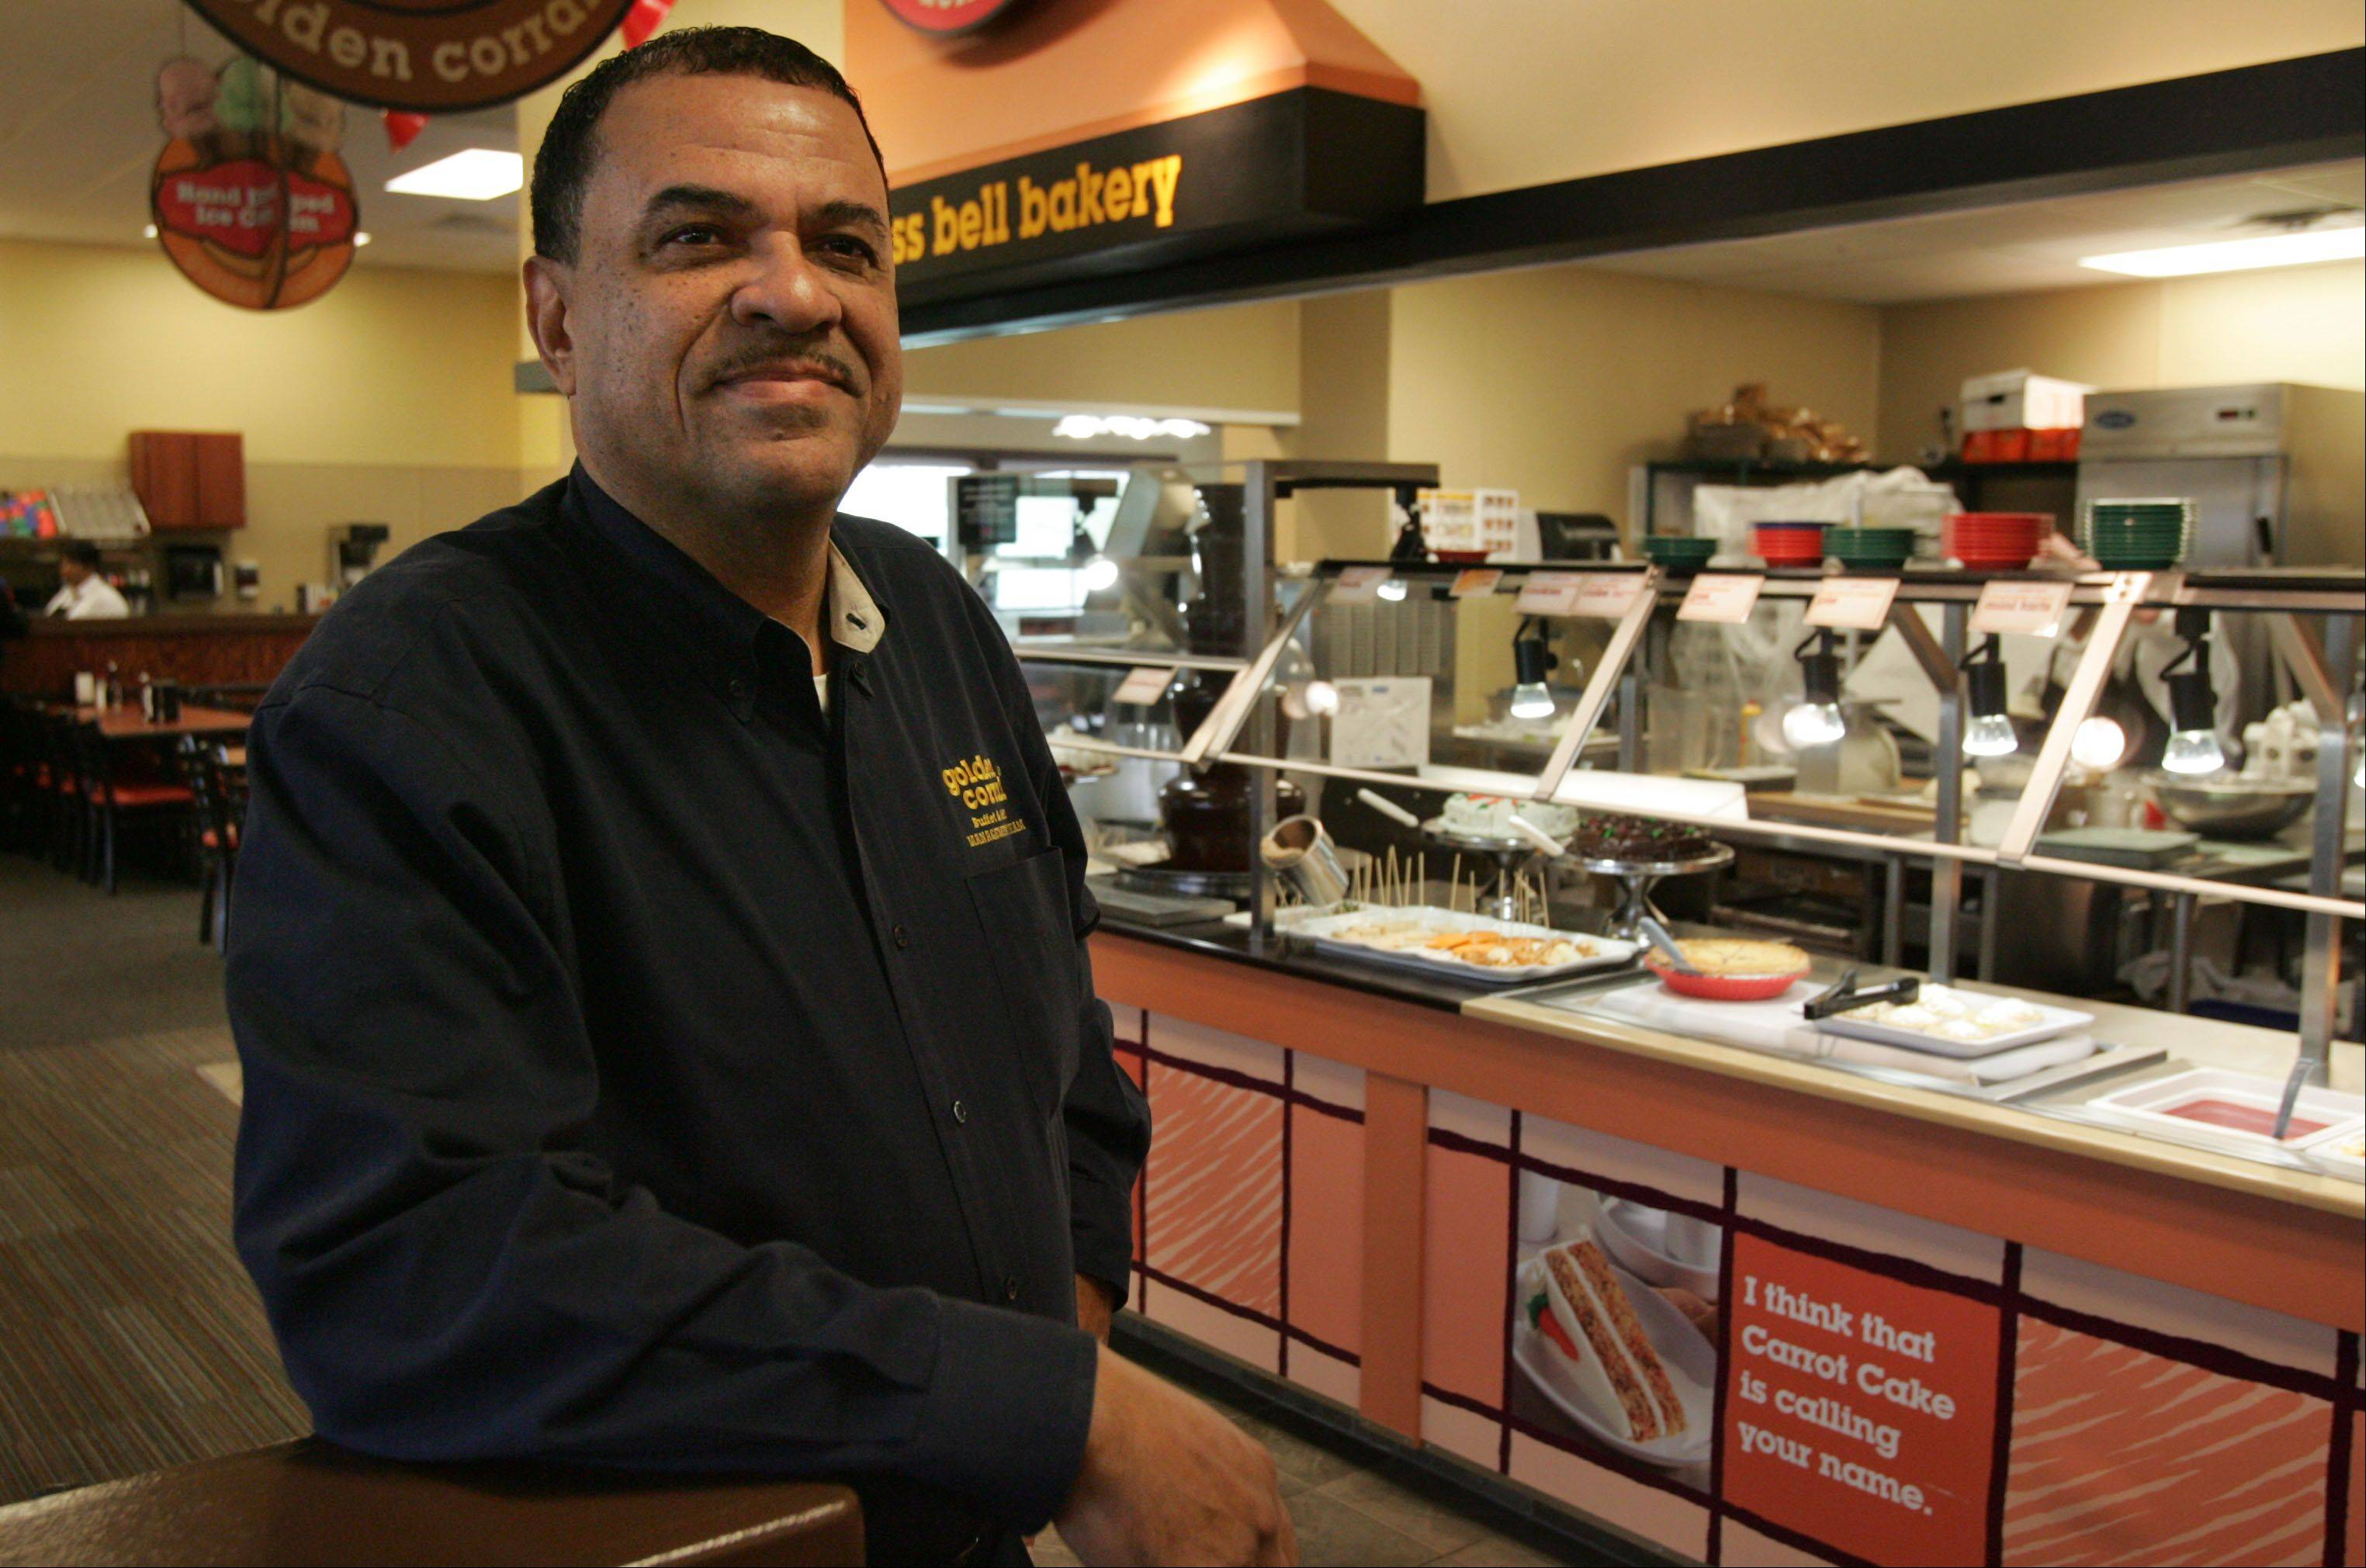 Samuel Gibson is the owner of Batavia's new Golden Corral restaurant, which opened last month.